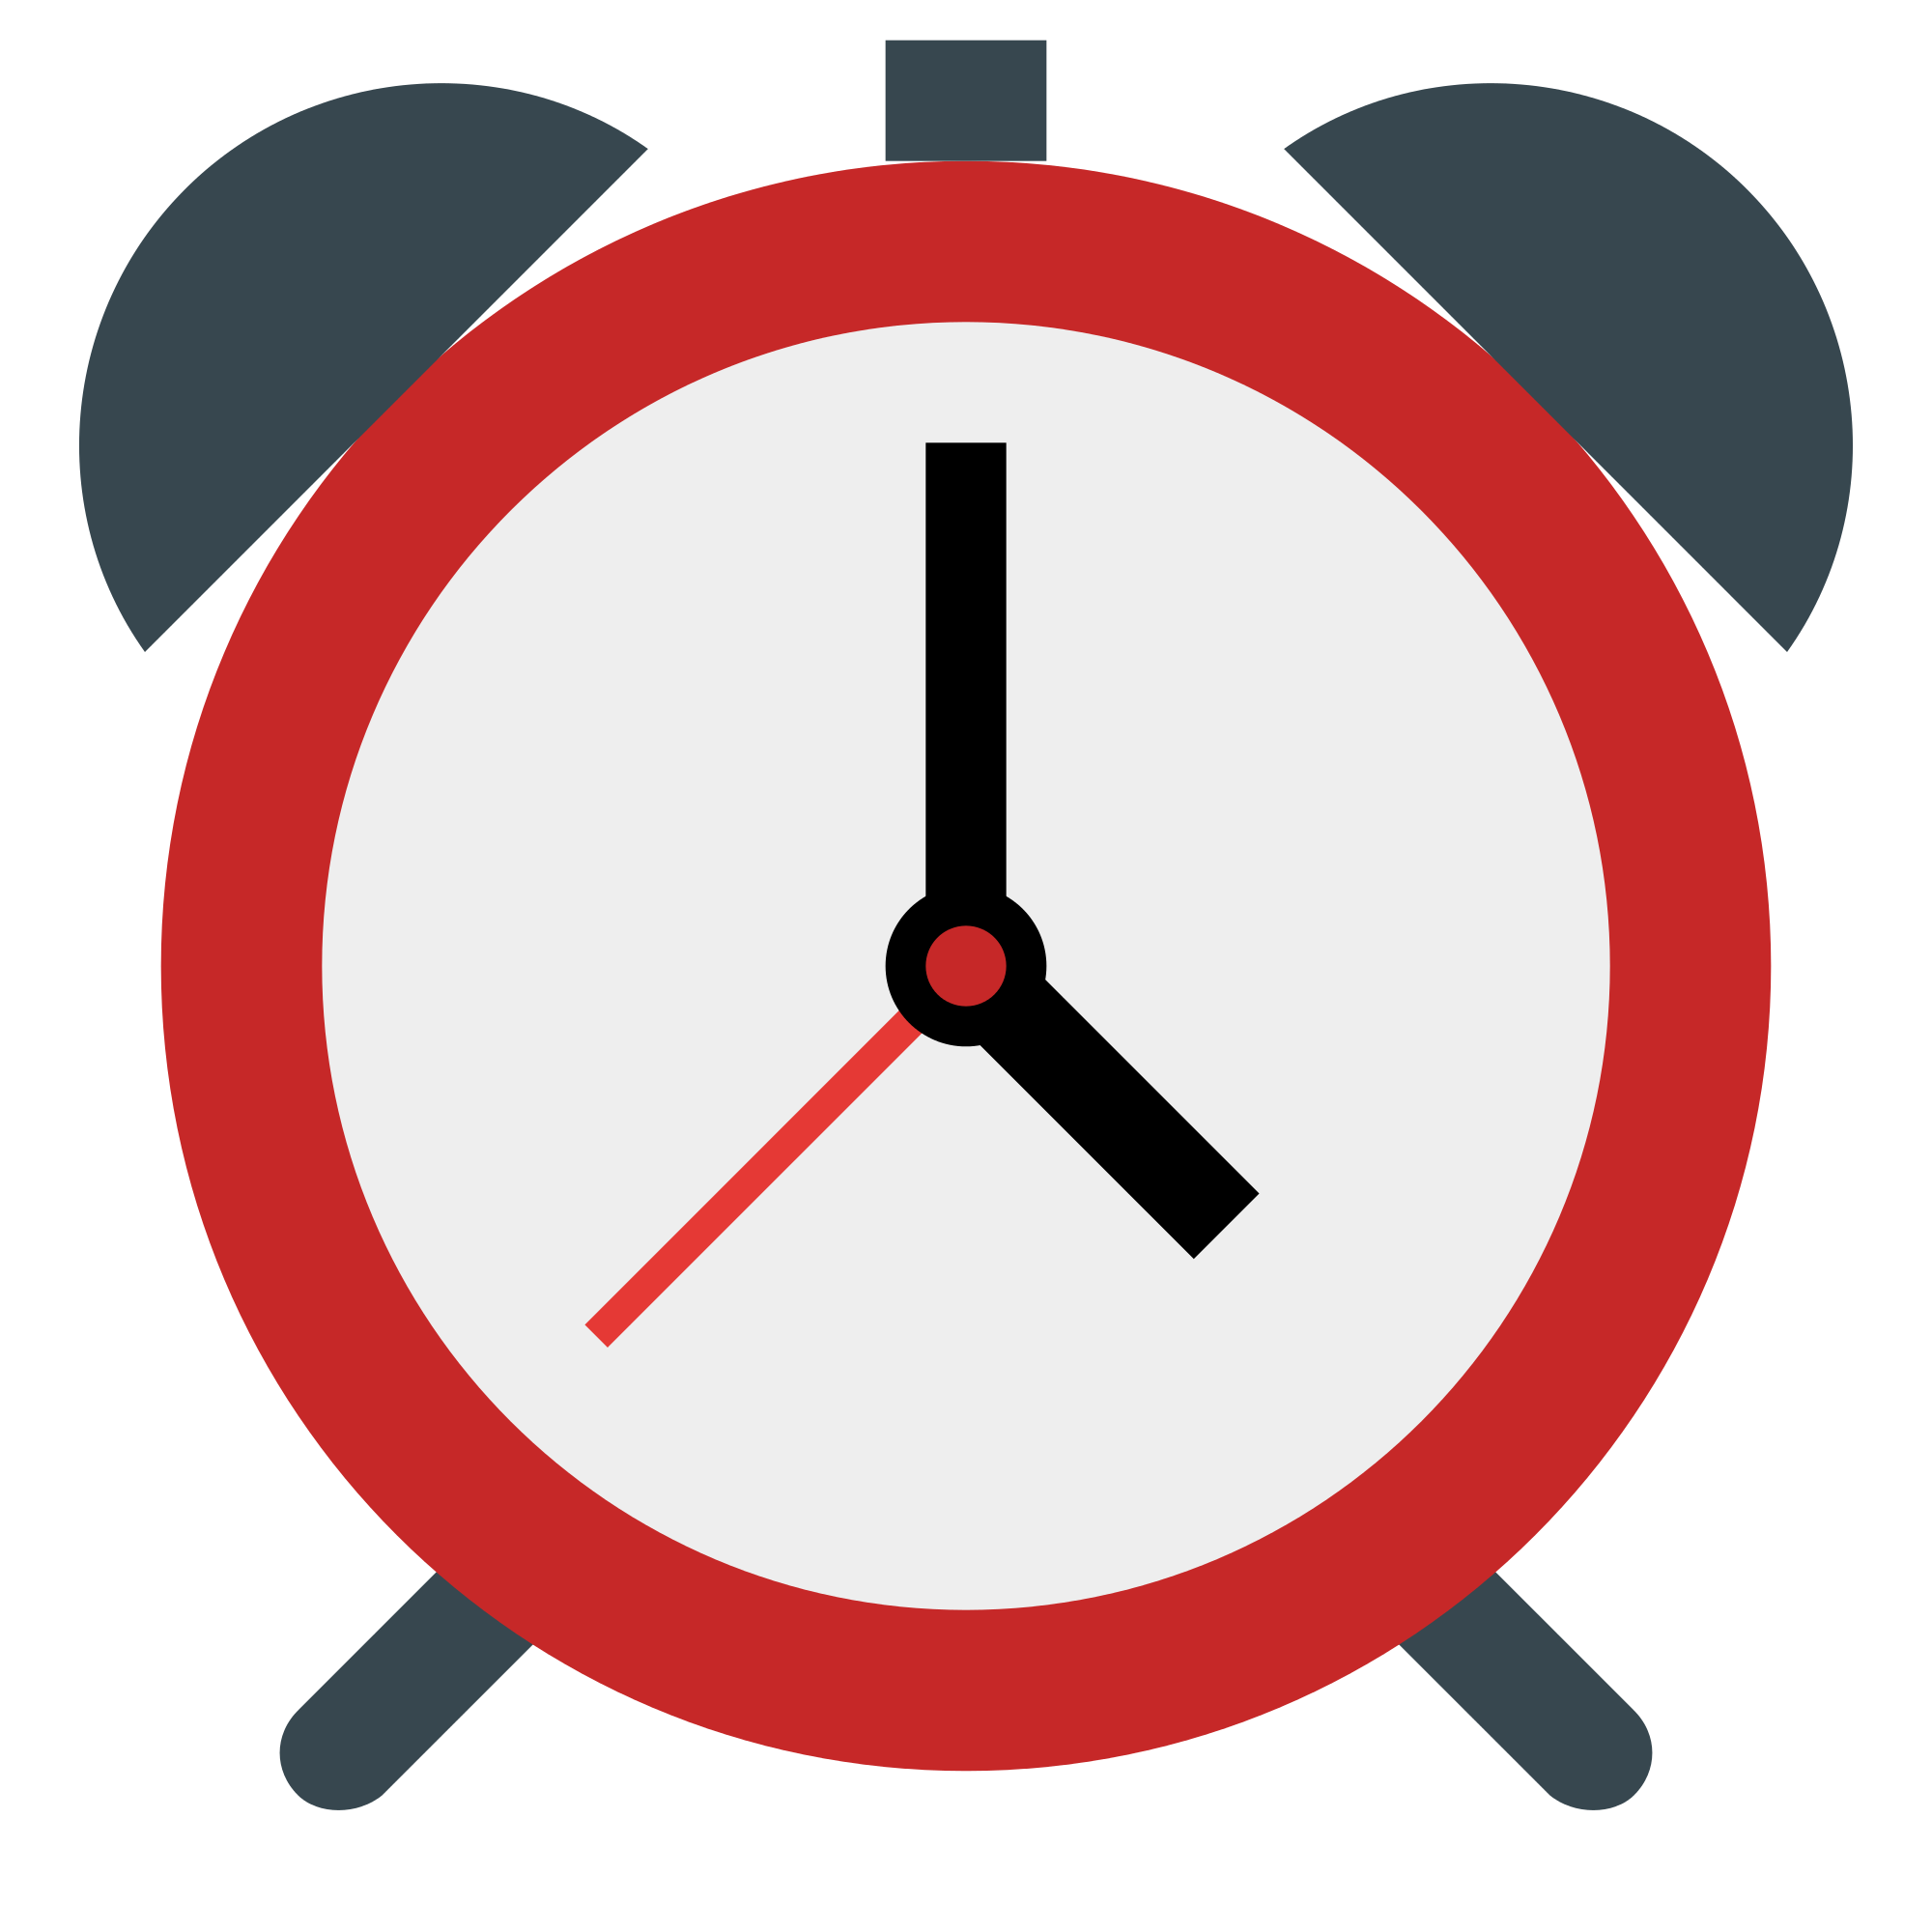 vector download File icons flat wikimedia. Clock svg alarm